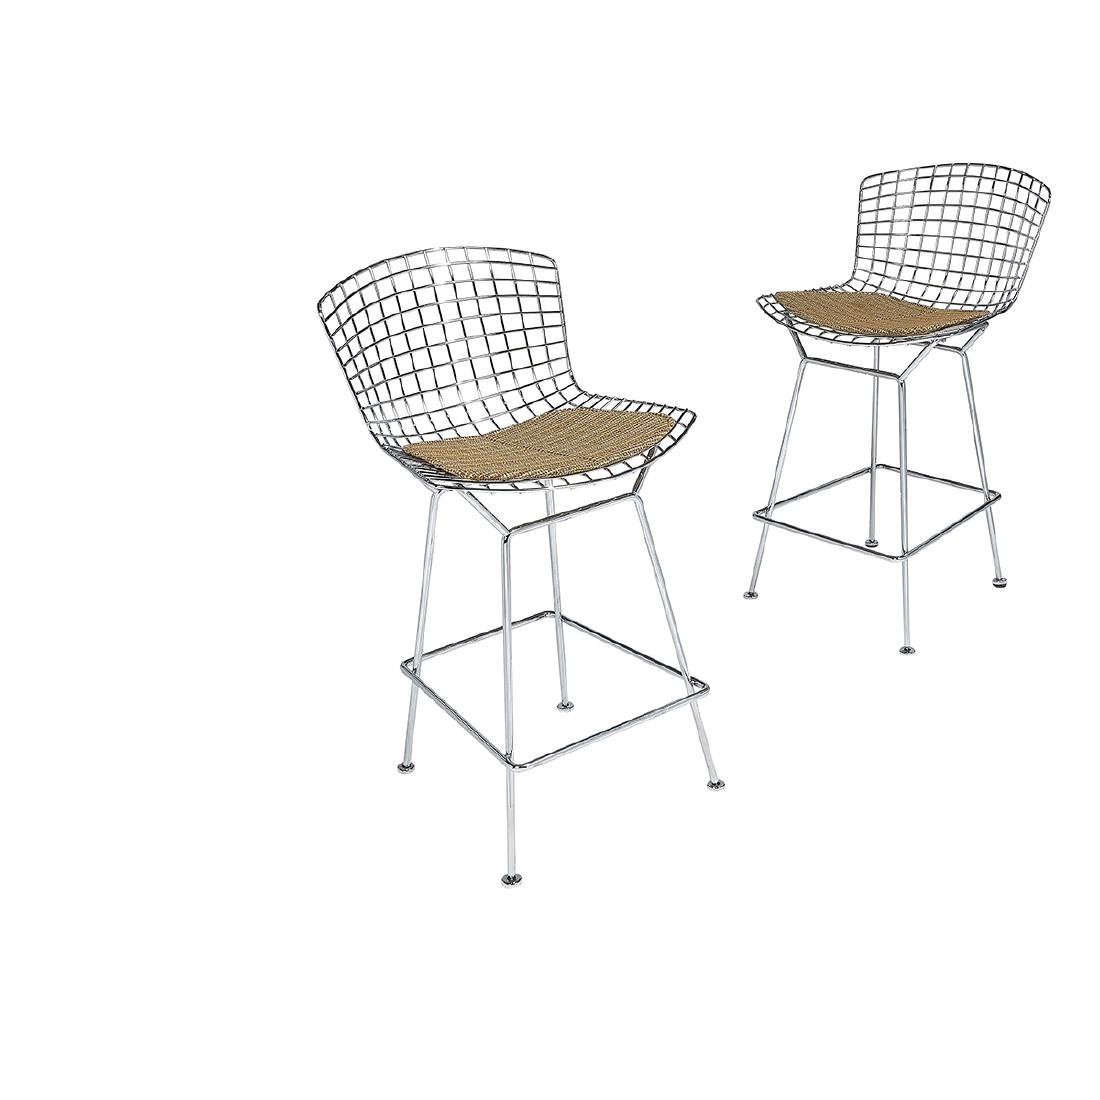 Harry Bertoia for Knoll International counter stools